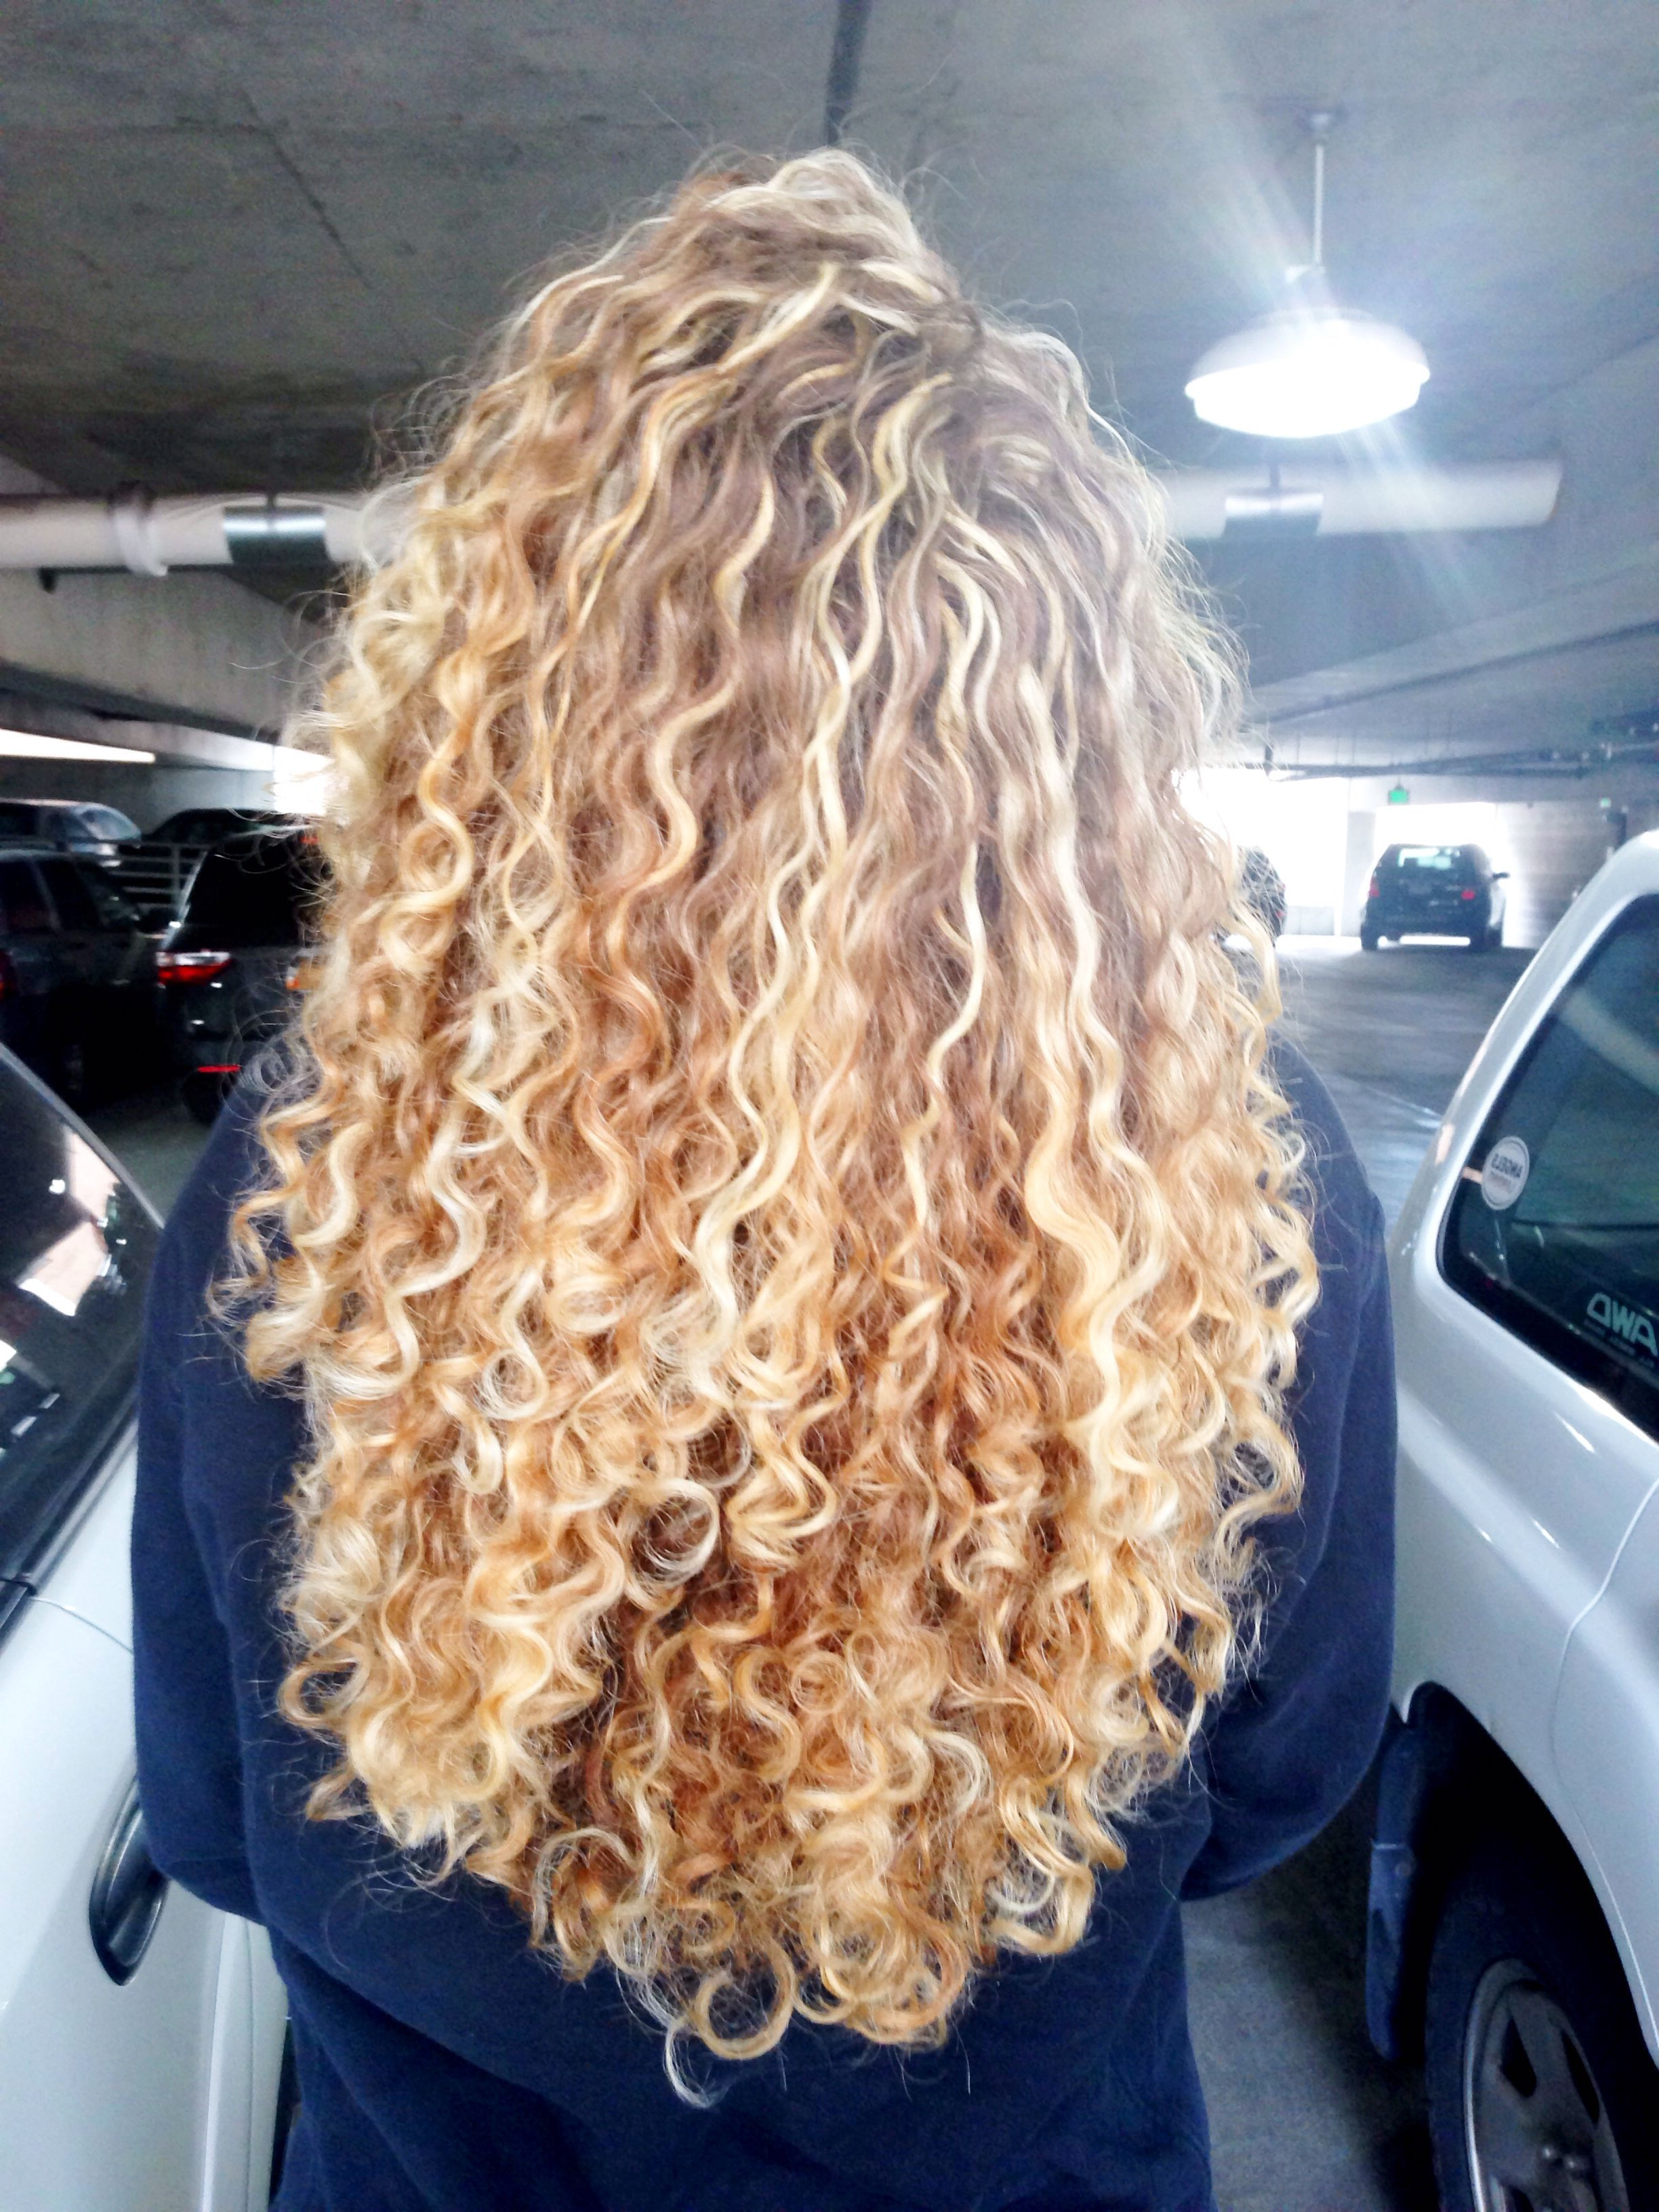 Hair #curly #blonde | Beauty | Curly Hair Styles, Curly Intended For Curls And Blonde Highlights Hairstyles (View 2 of 20)